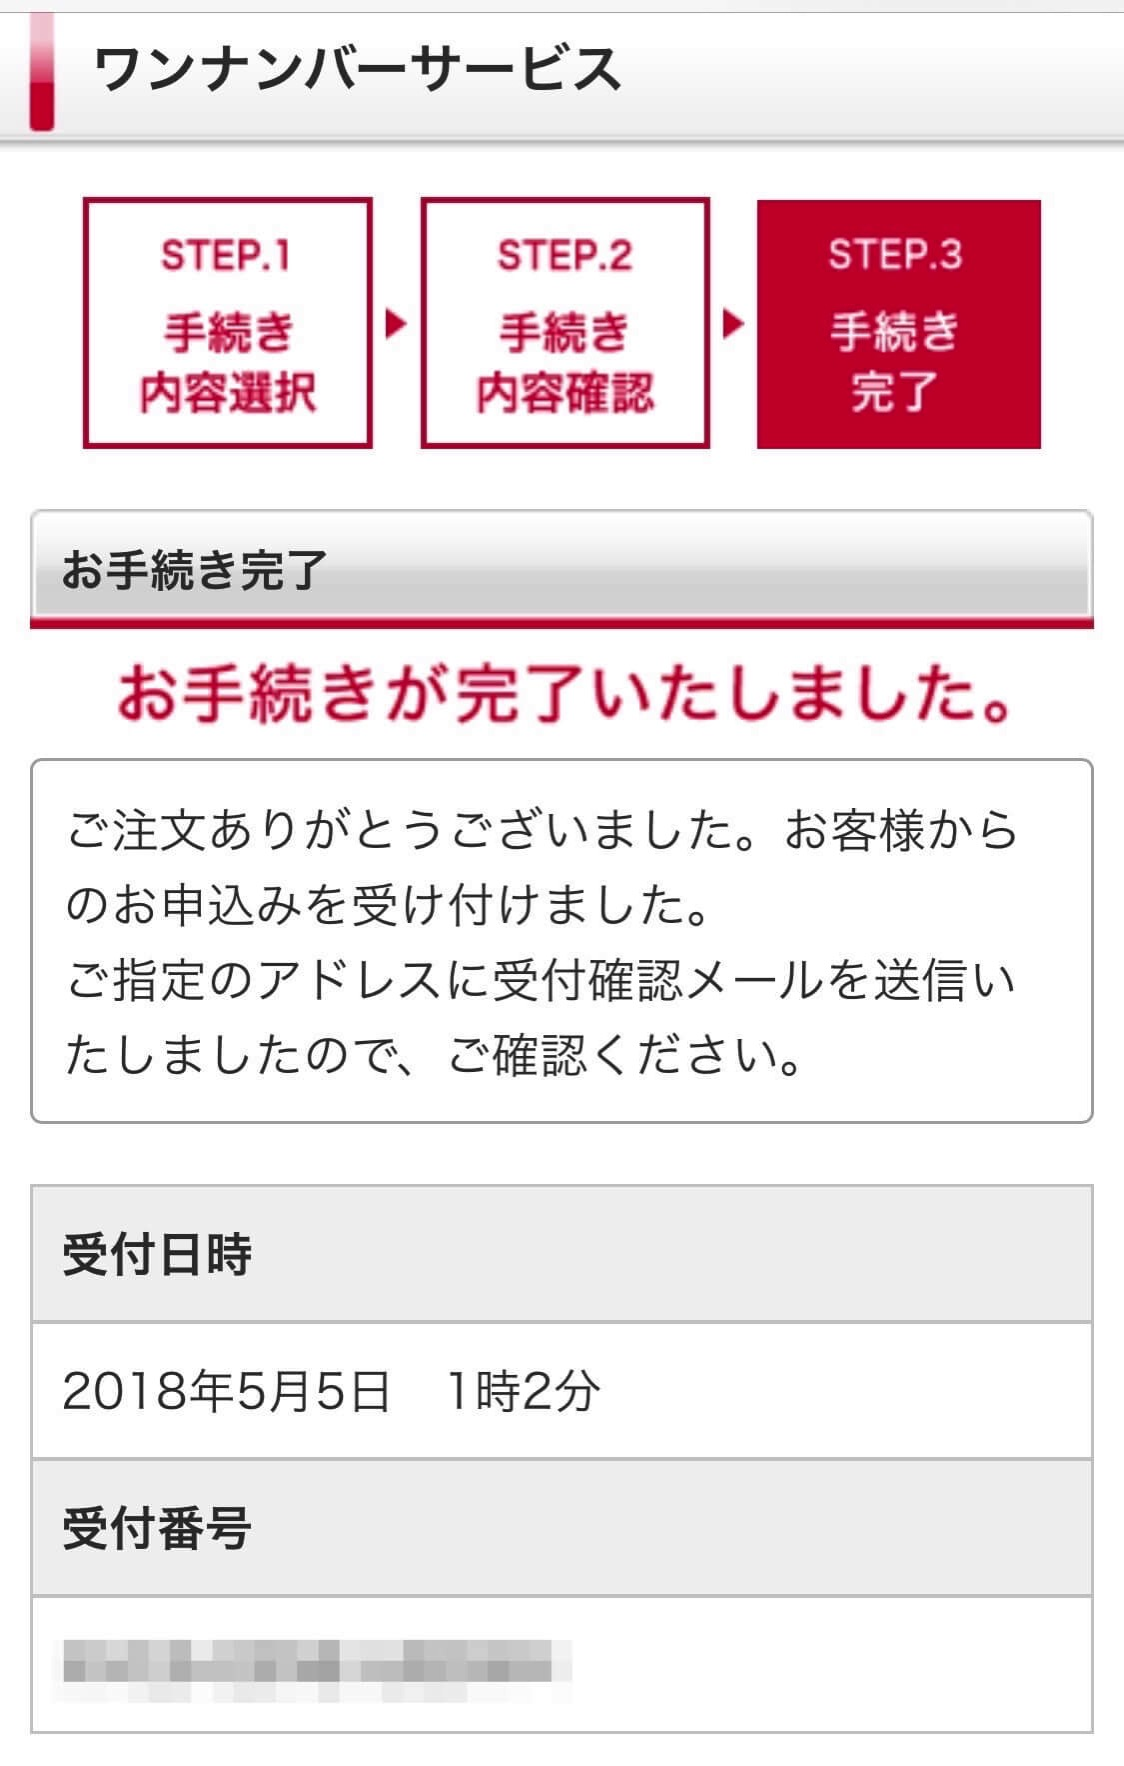 The docomo one number service cancellation of a contract 10